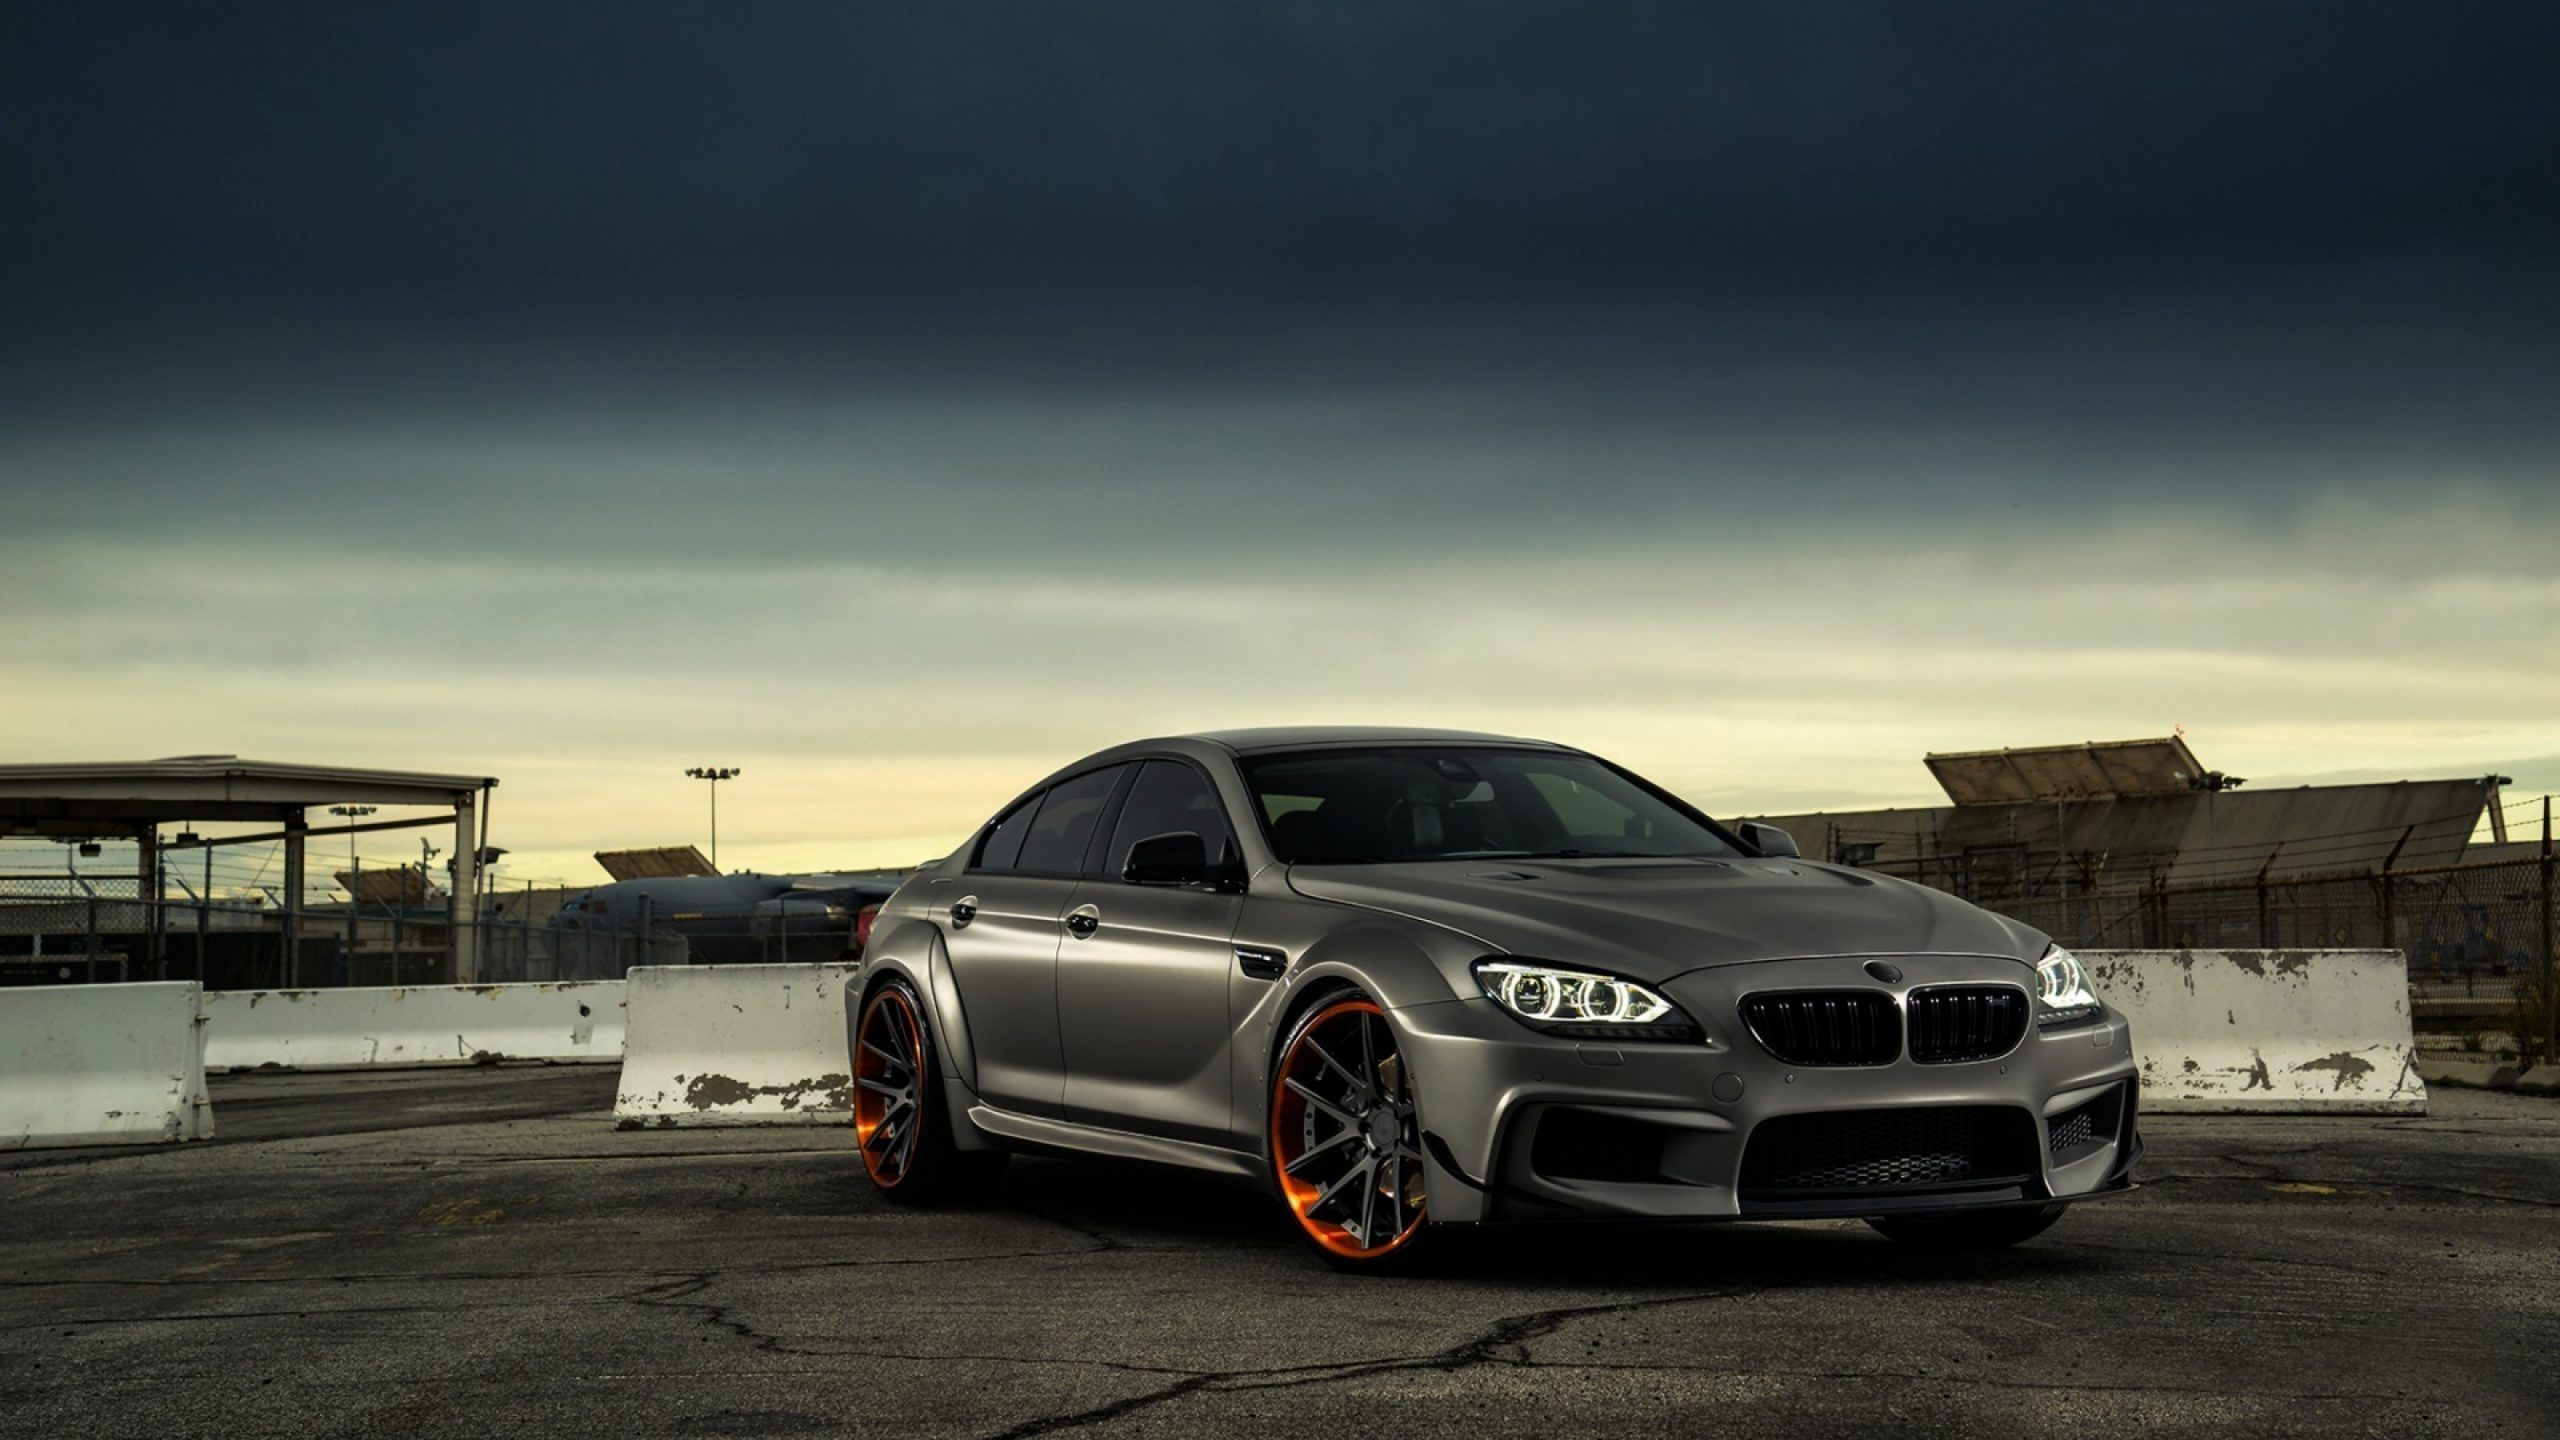 Top Free 4K BMW Backgrounds